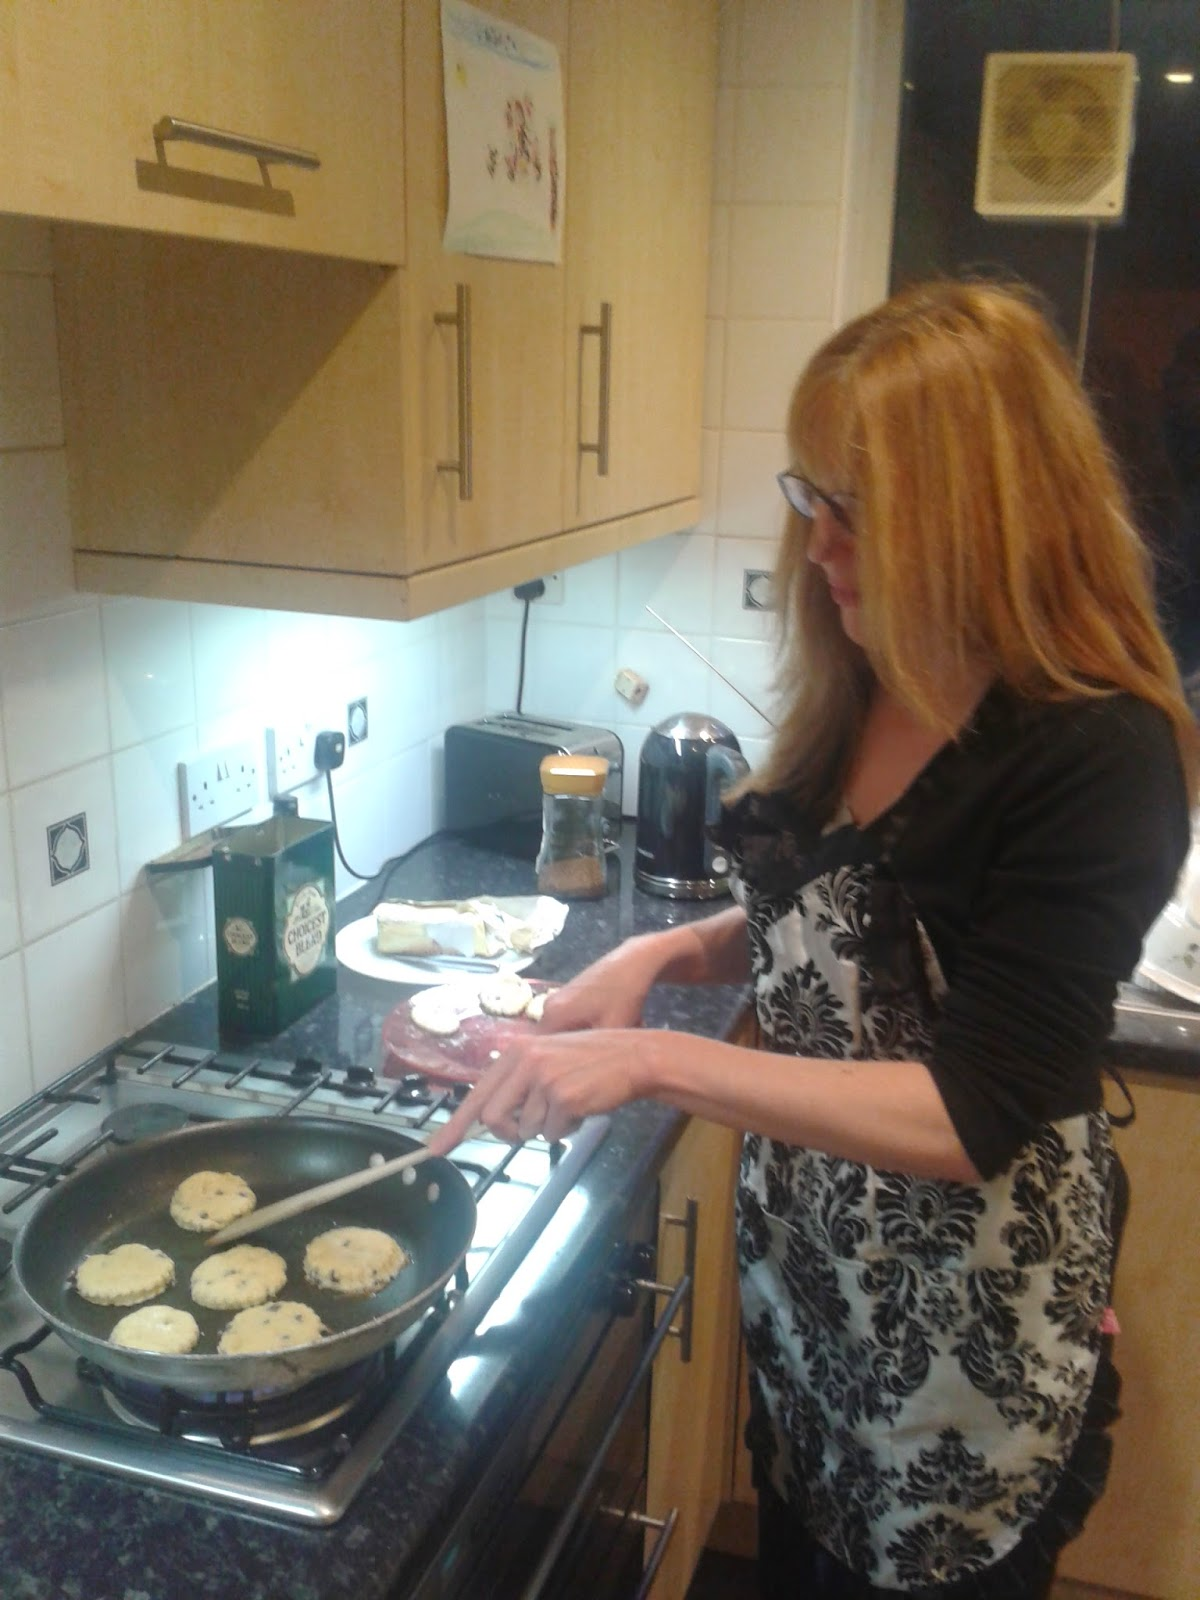 Welsh cakes recipe - Linda Hobbis cooking Welsh cakes on the hob